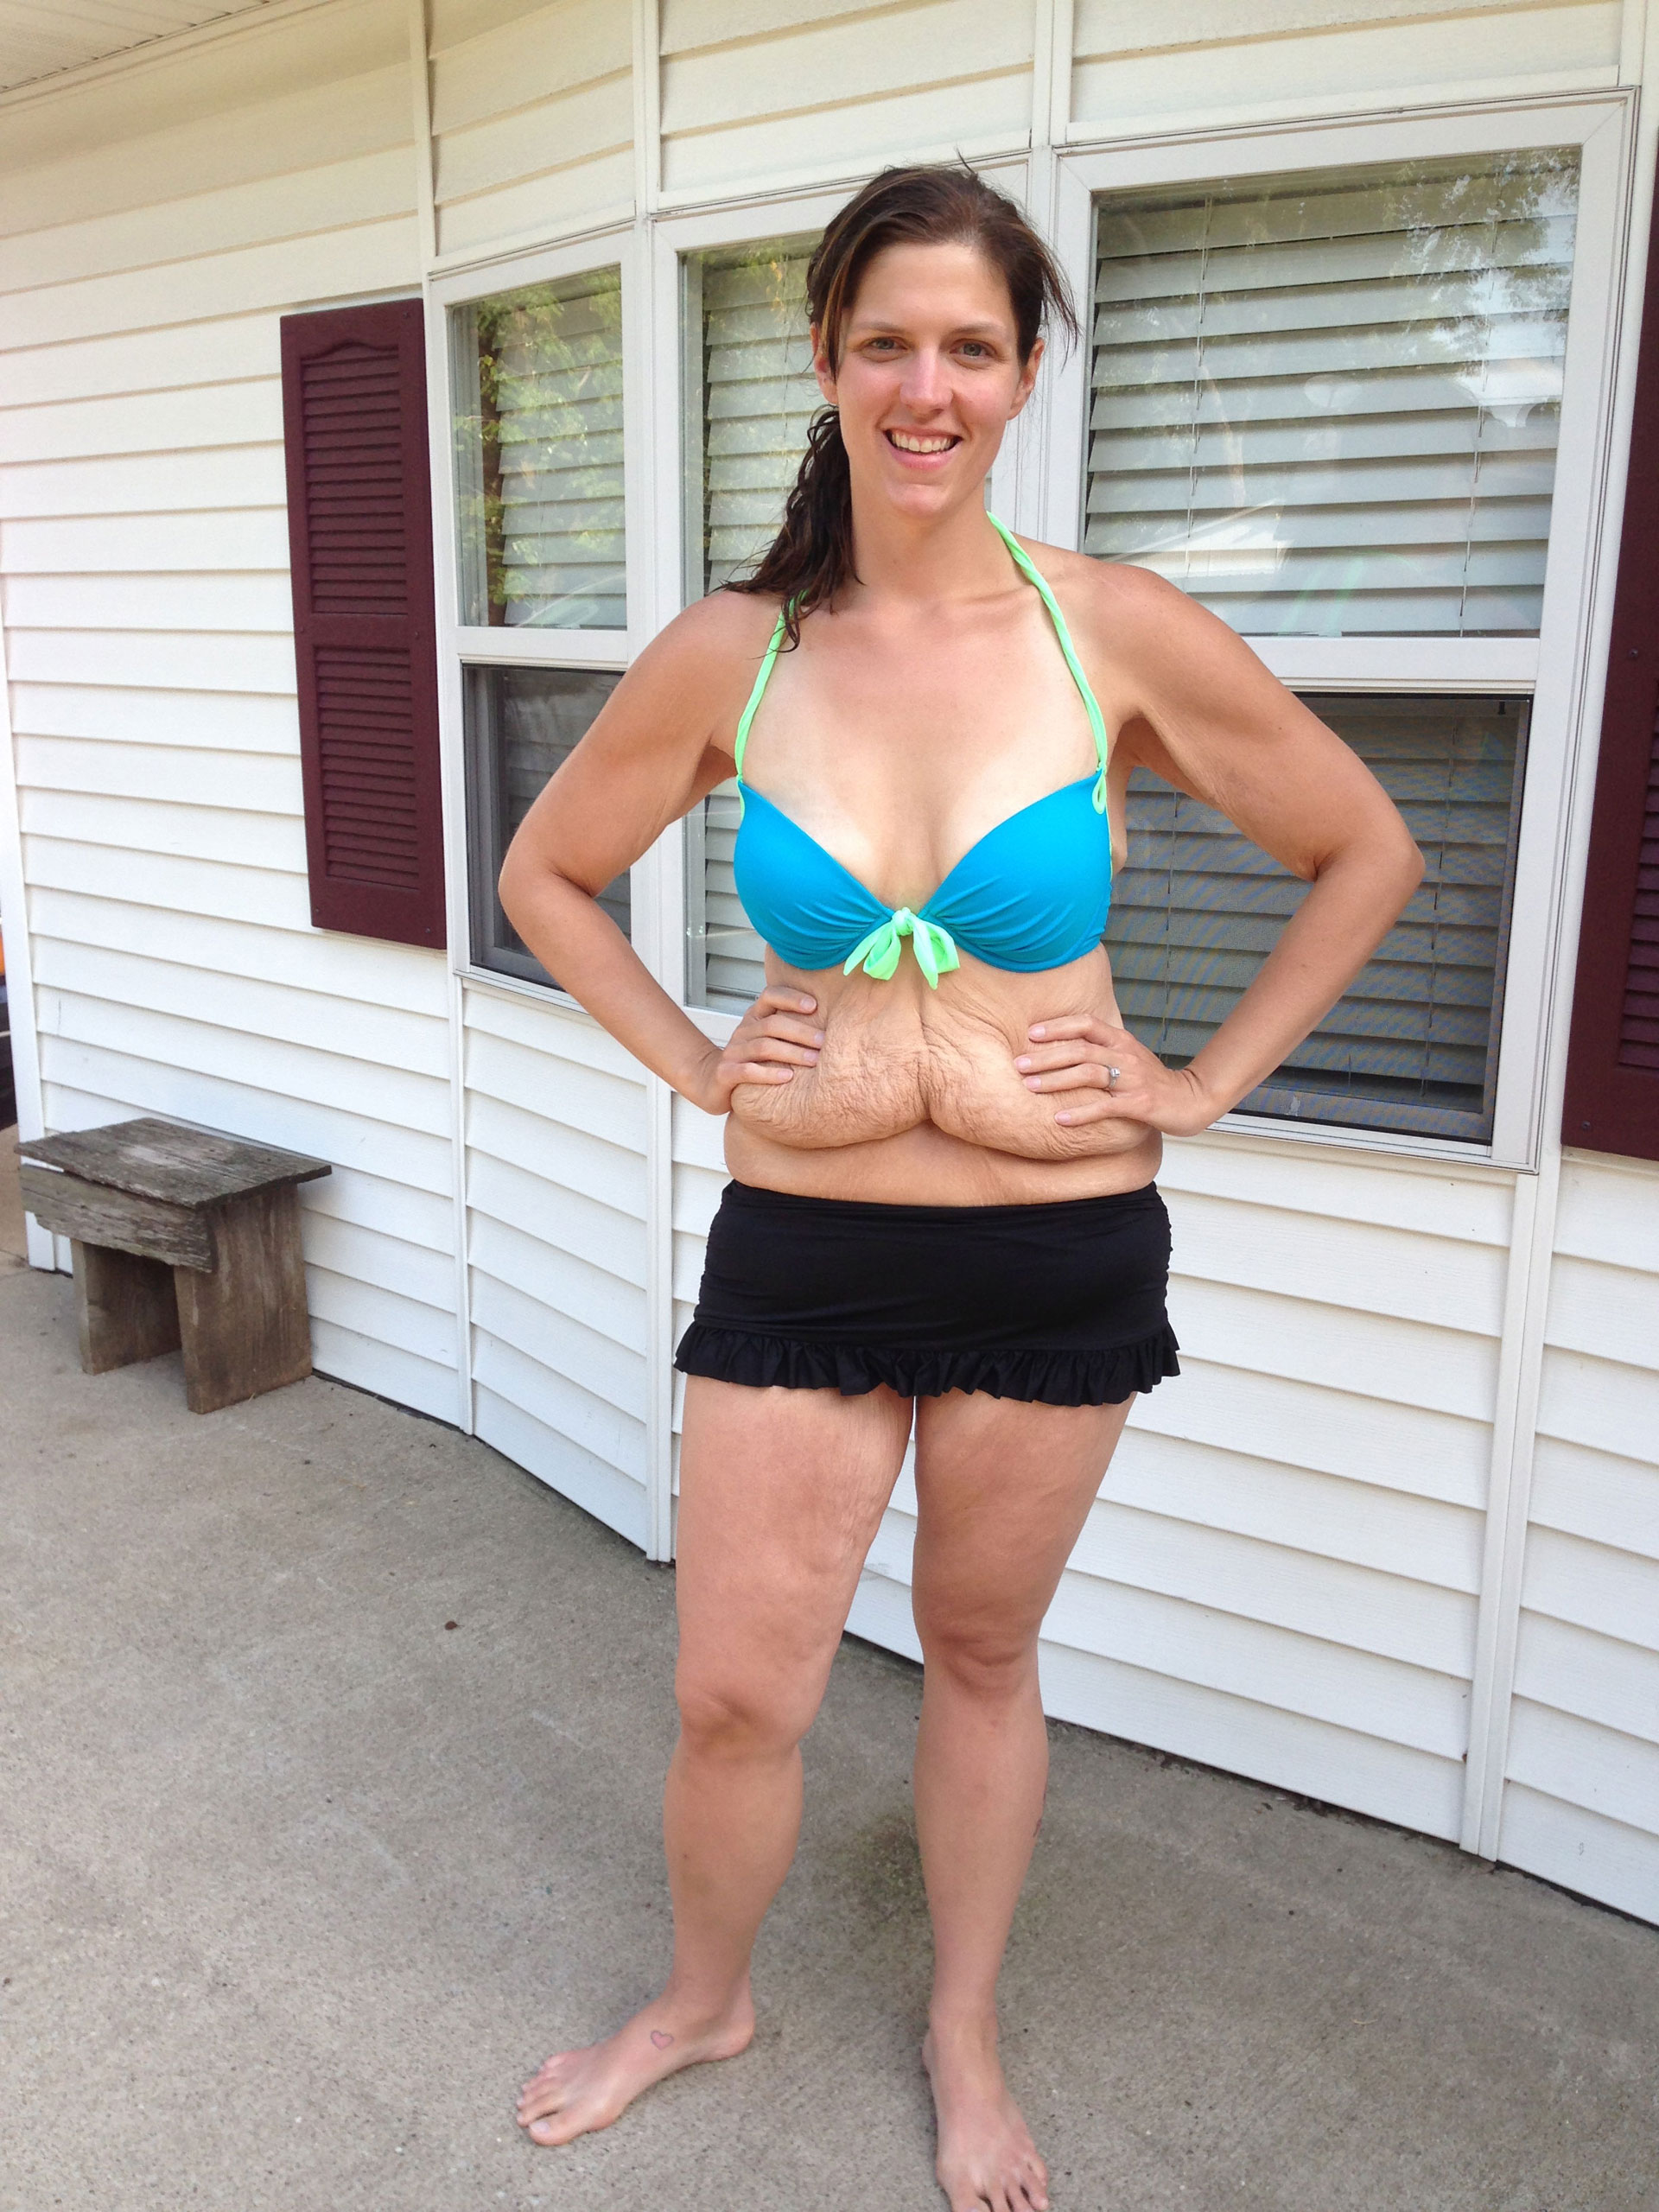 Woman 39 s rejected weight loss photo sparks body image debate